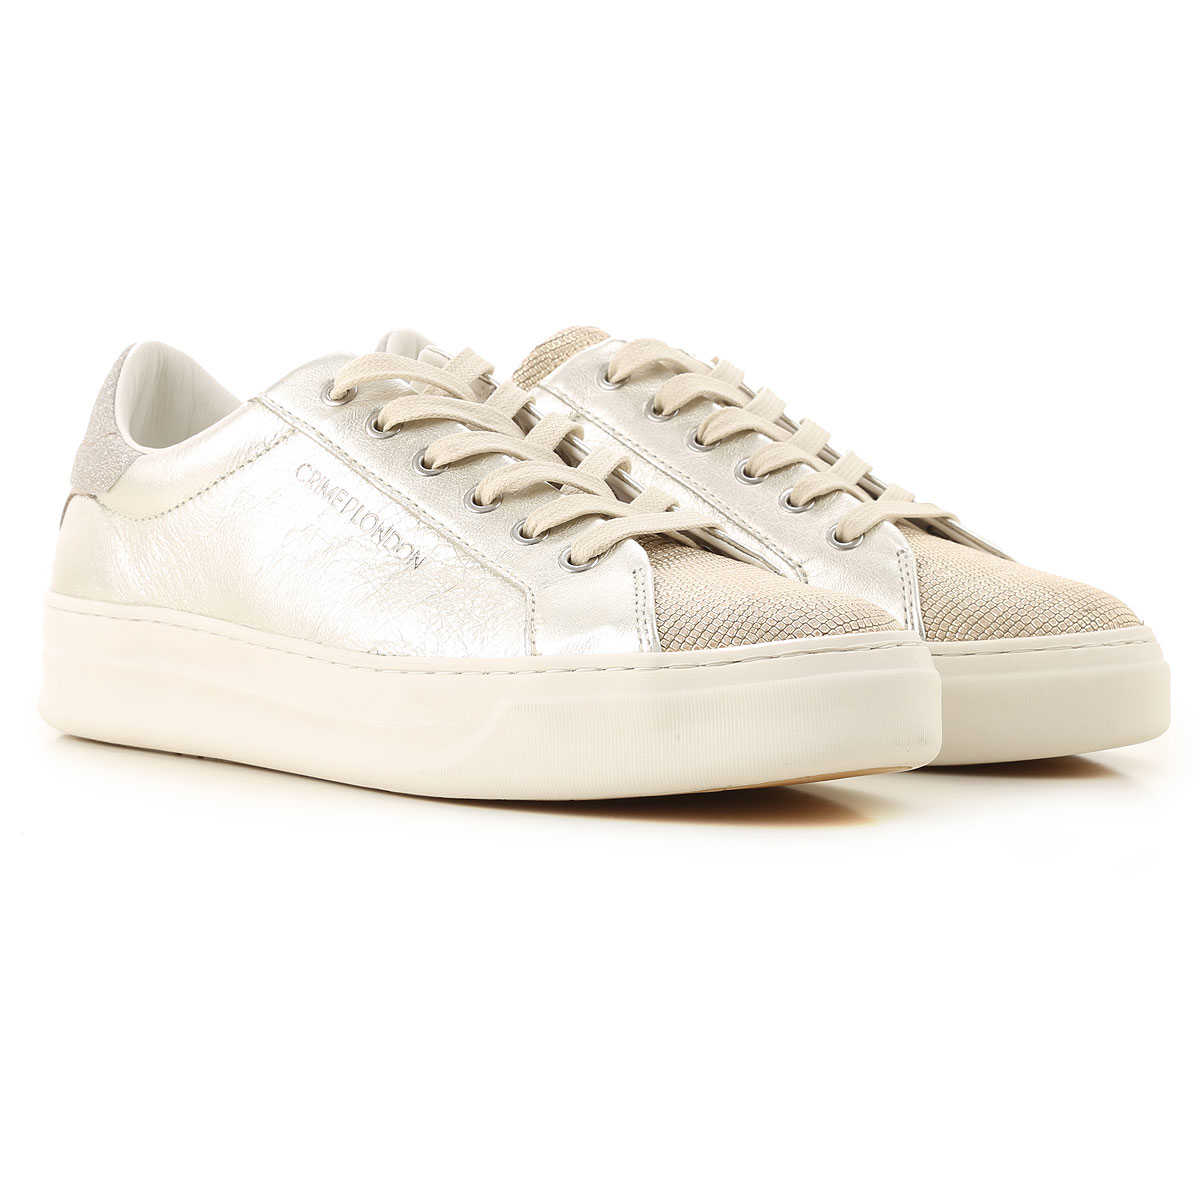 Crime Sneakers for Women On Sale Gold SE - GOOFASH